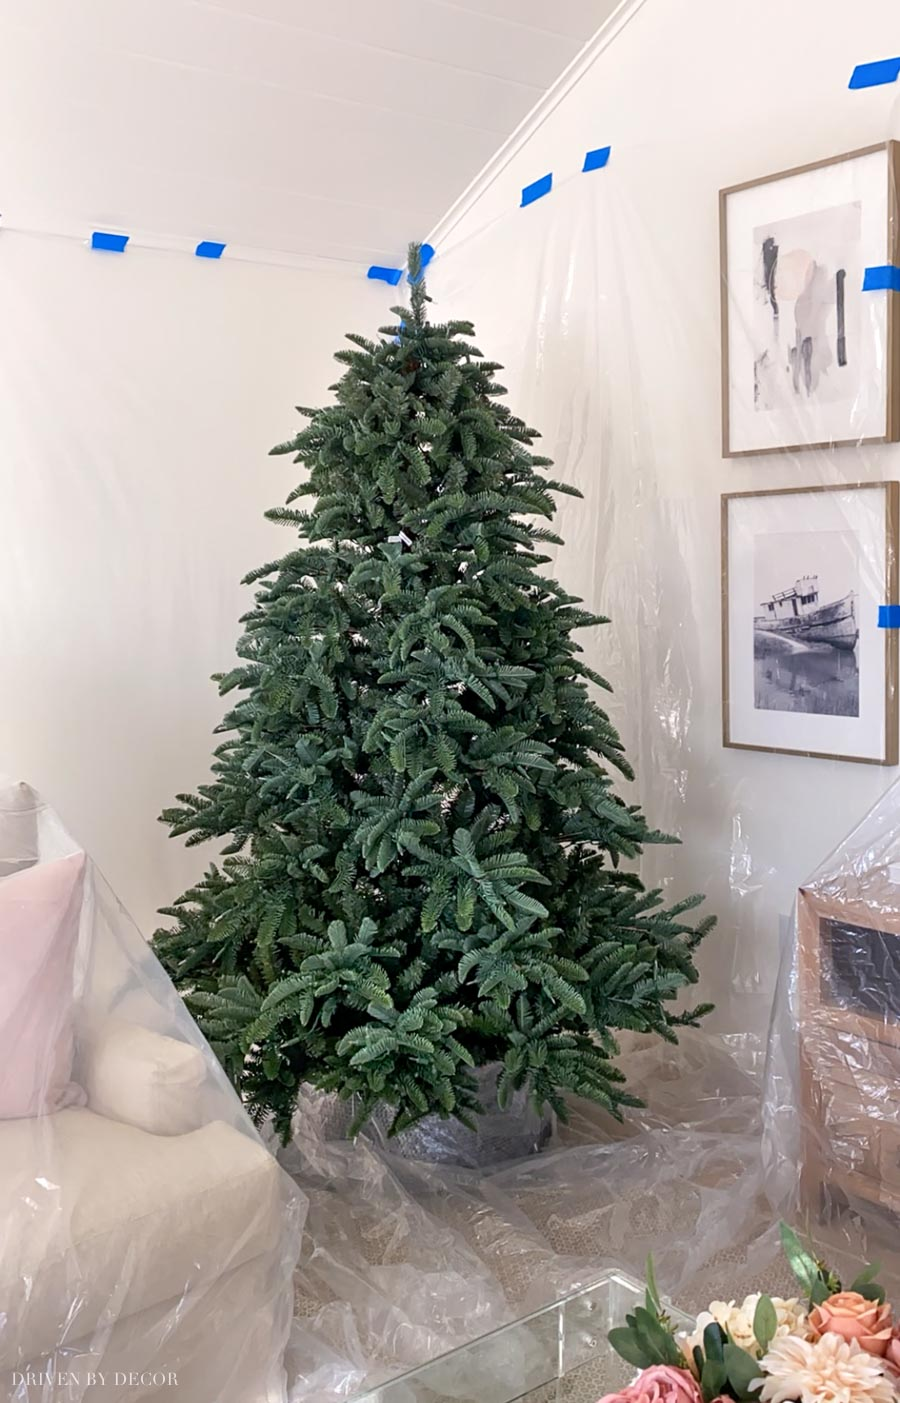 If your flocking your Christmas tree inside, cover your nearby walls and furniture with plastic to protect them!